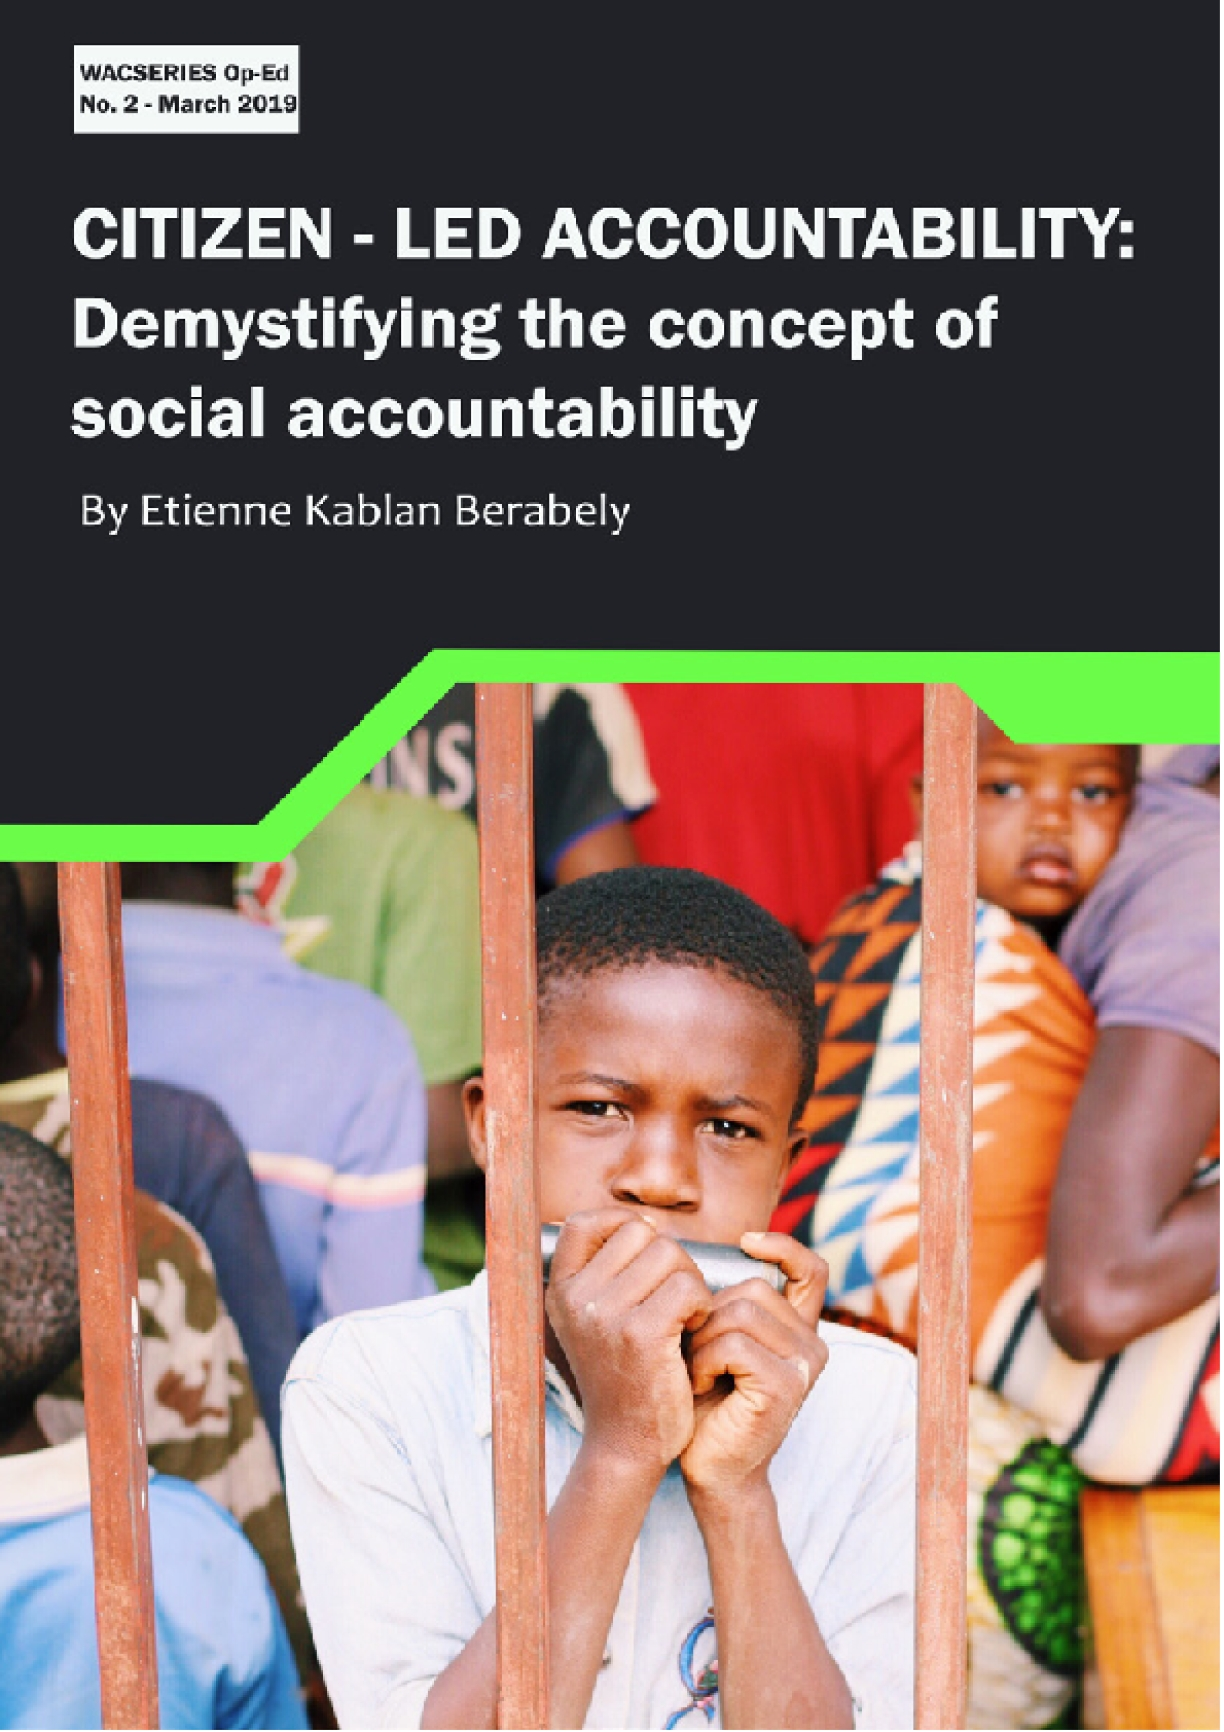 Citizen-Led Accountability: Demystifying the concept of social accountability